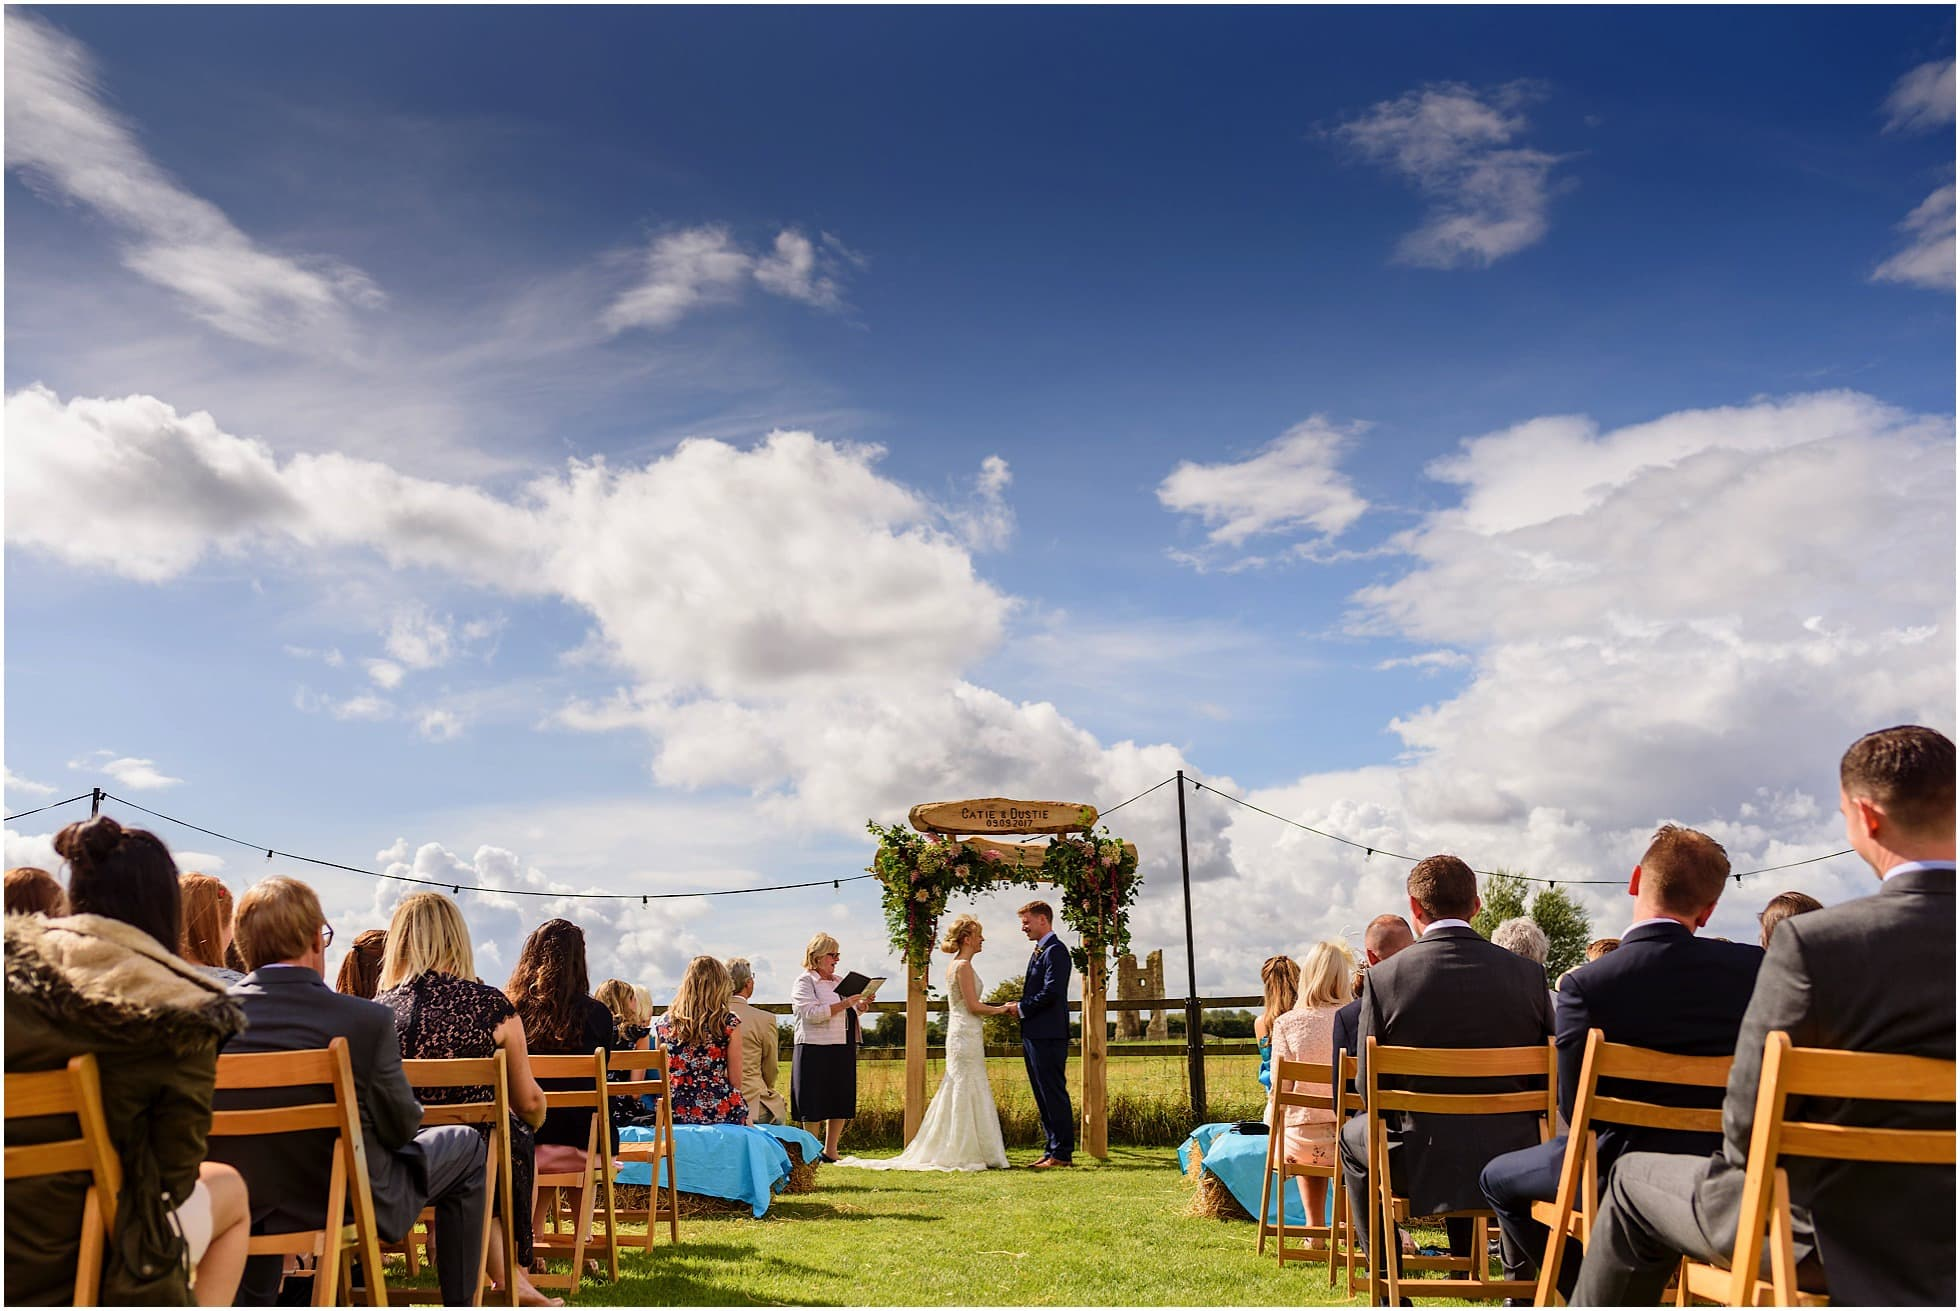 Godwick Barn Outdoor Ceremony